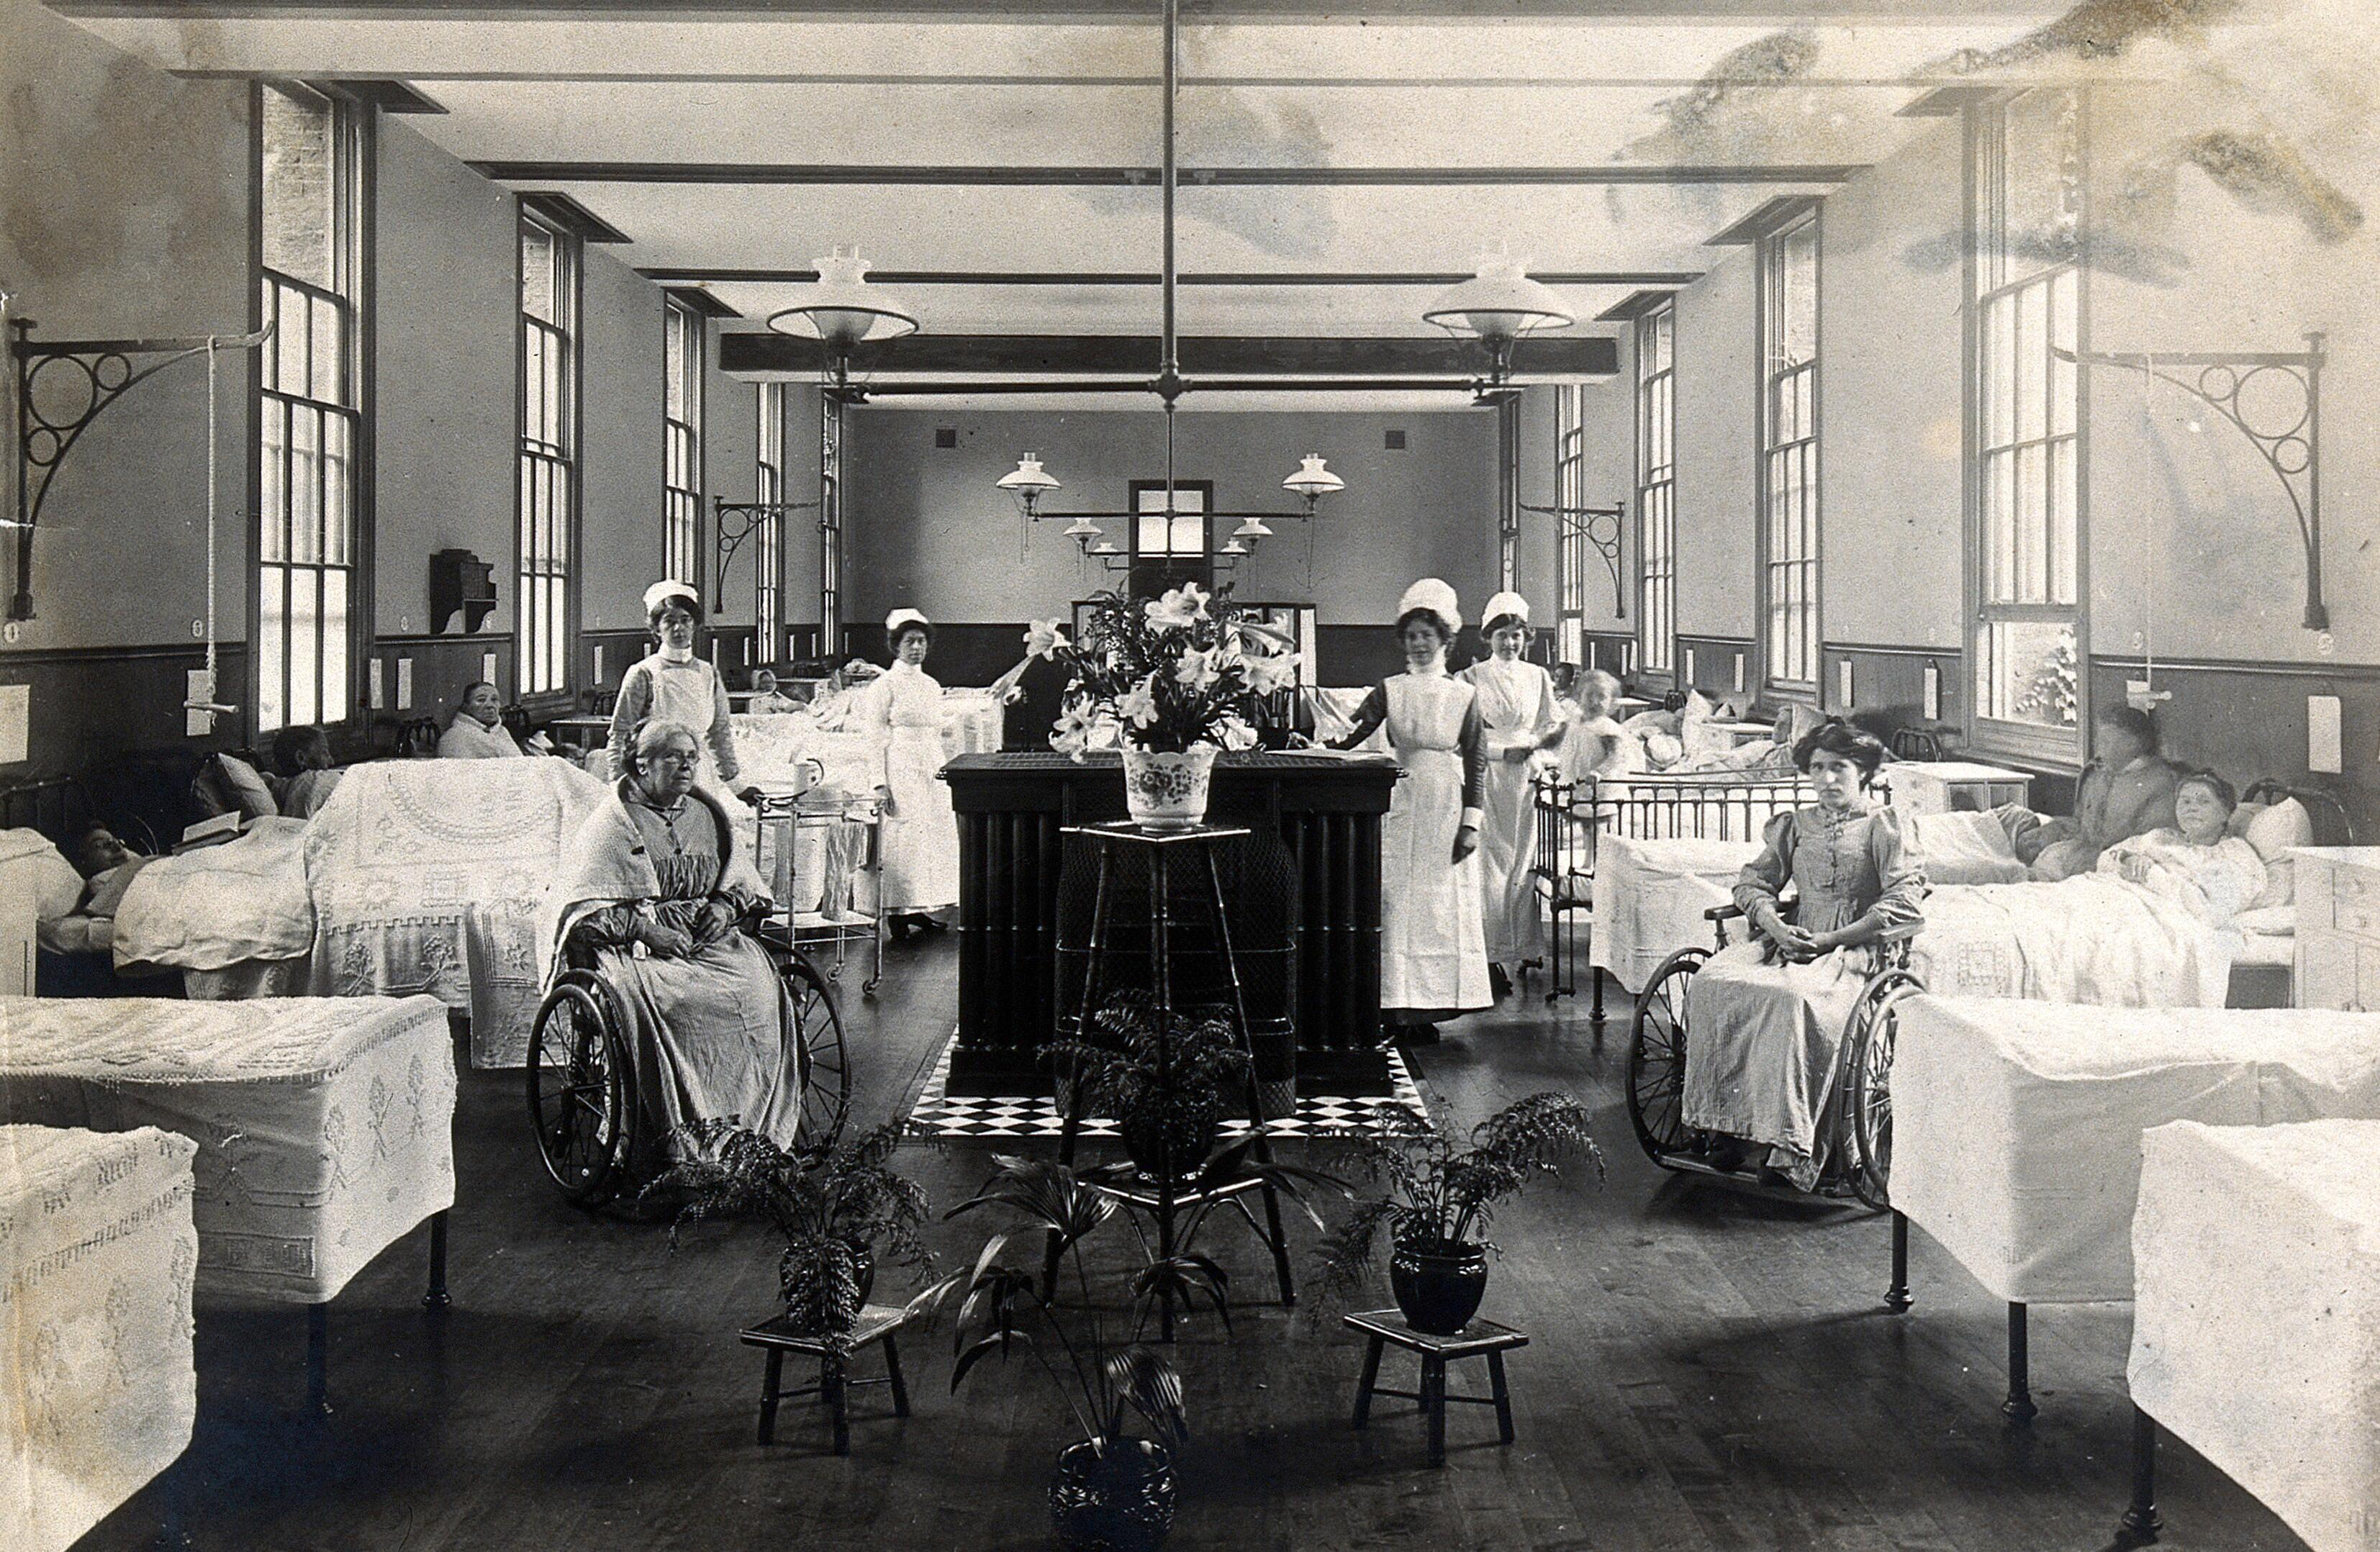 Photograph of nurses and patients on a ward in St Marylebone Infirmary, taken in 1910